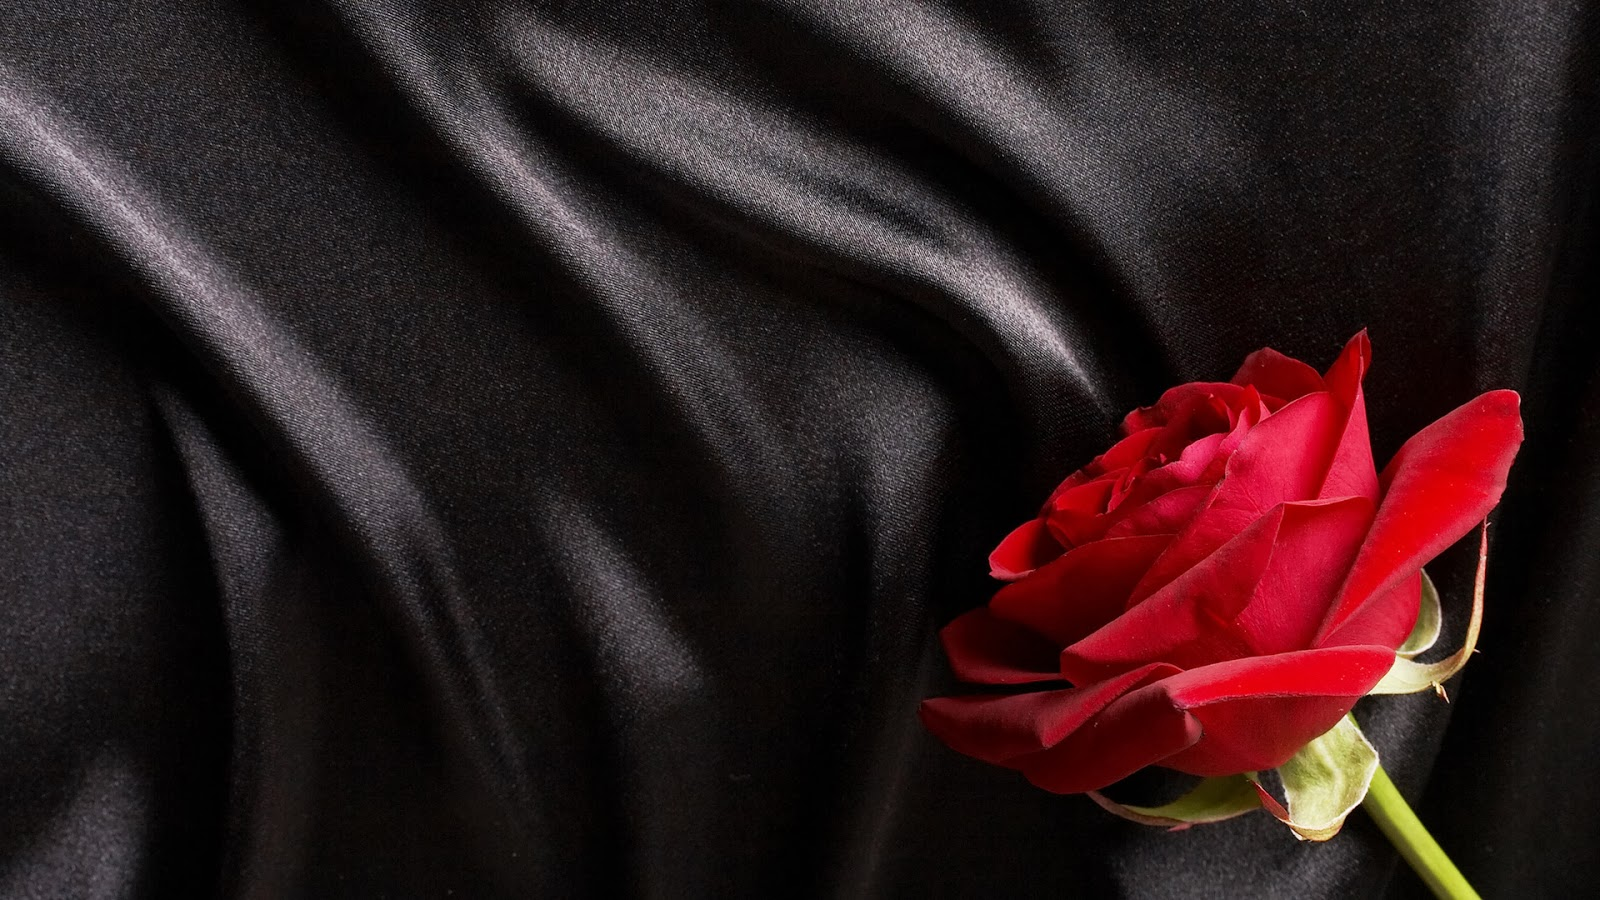 Red-Rose-Black-background-Template-stock-images-free-download.jpg